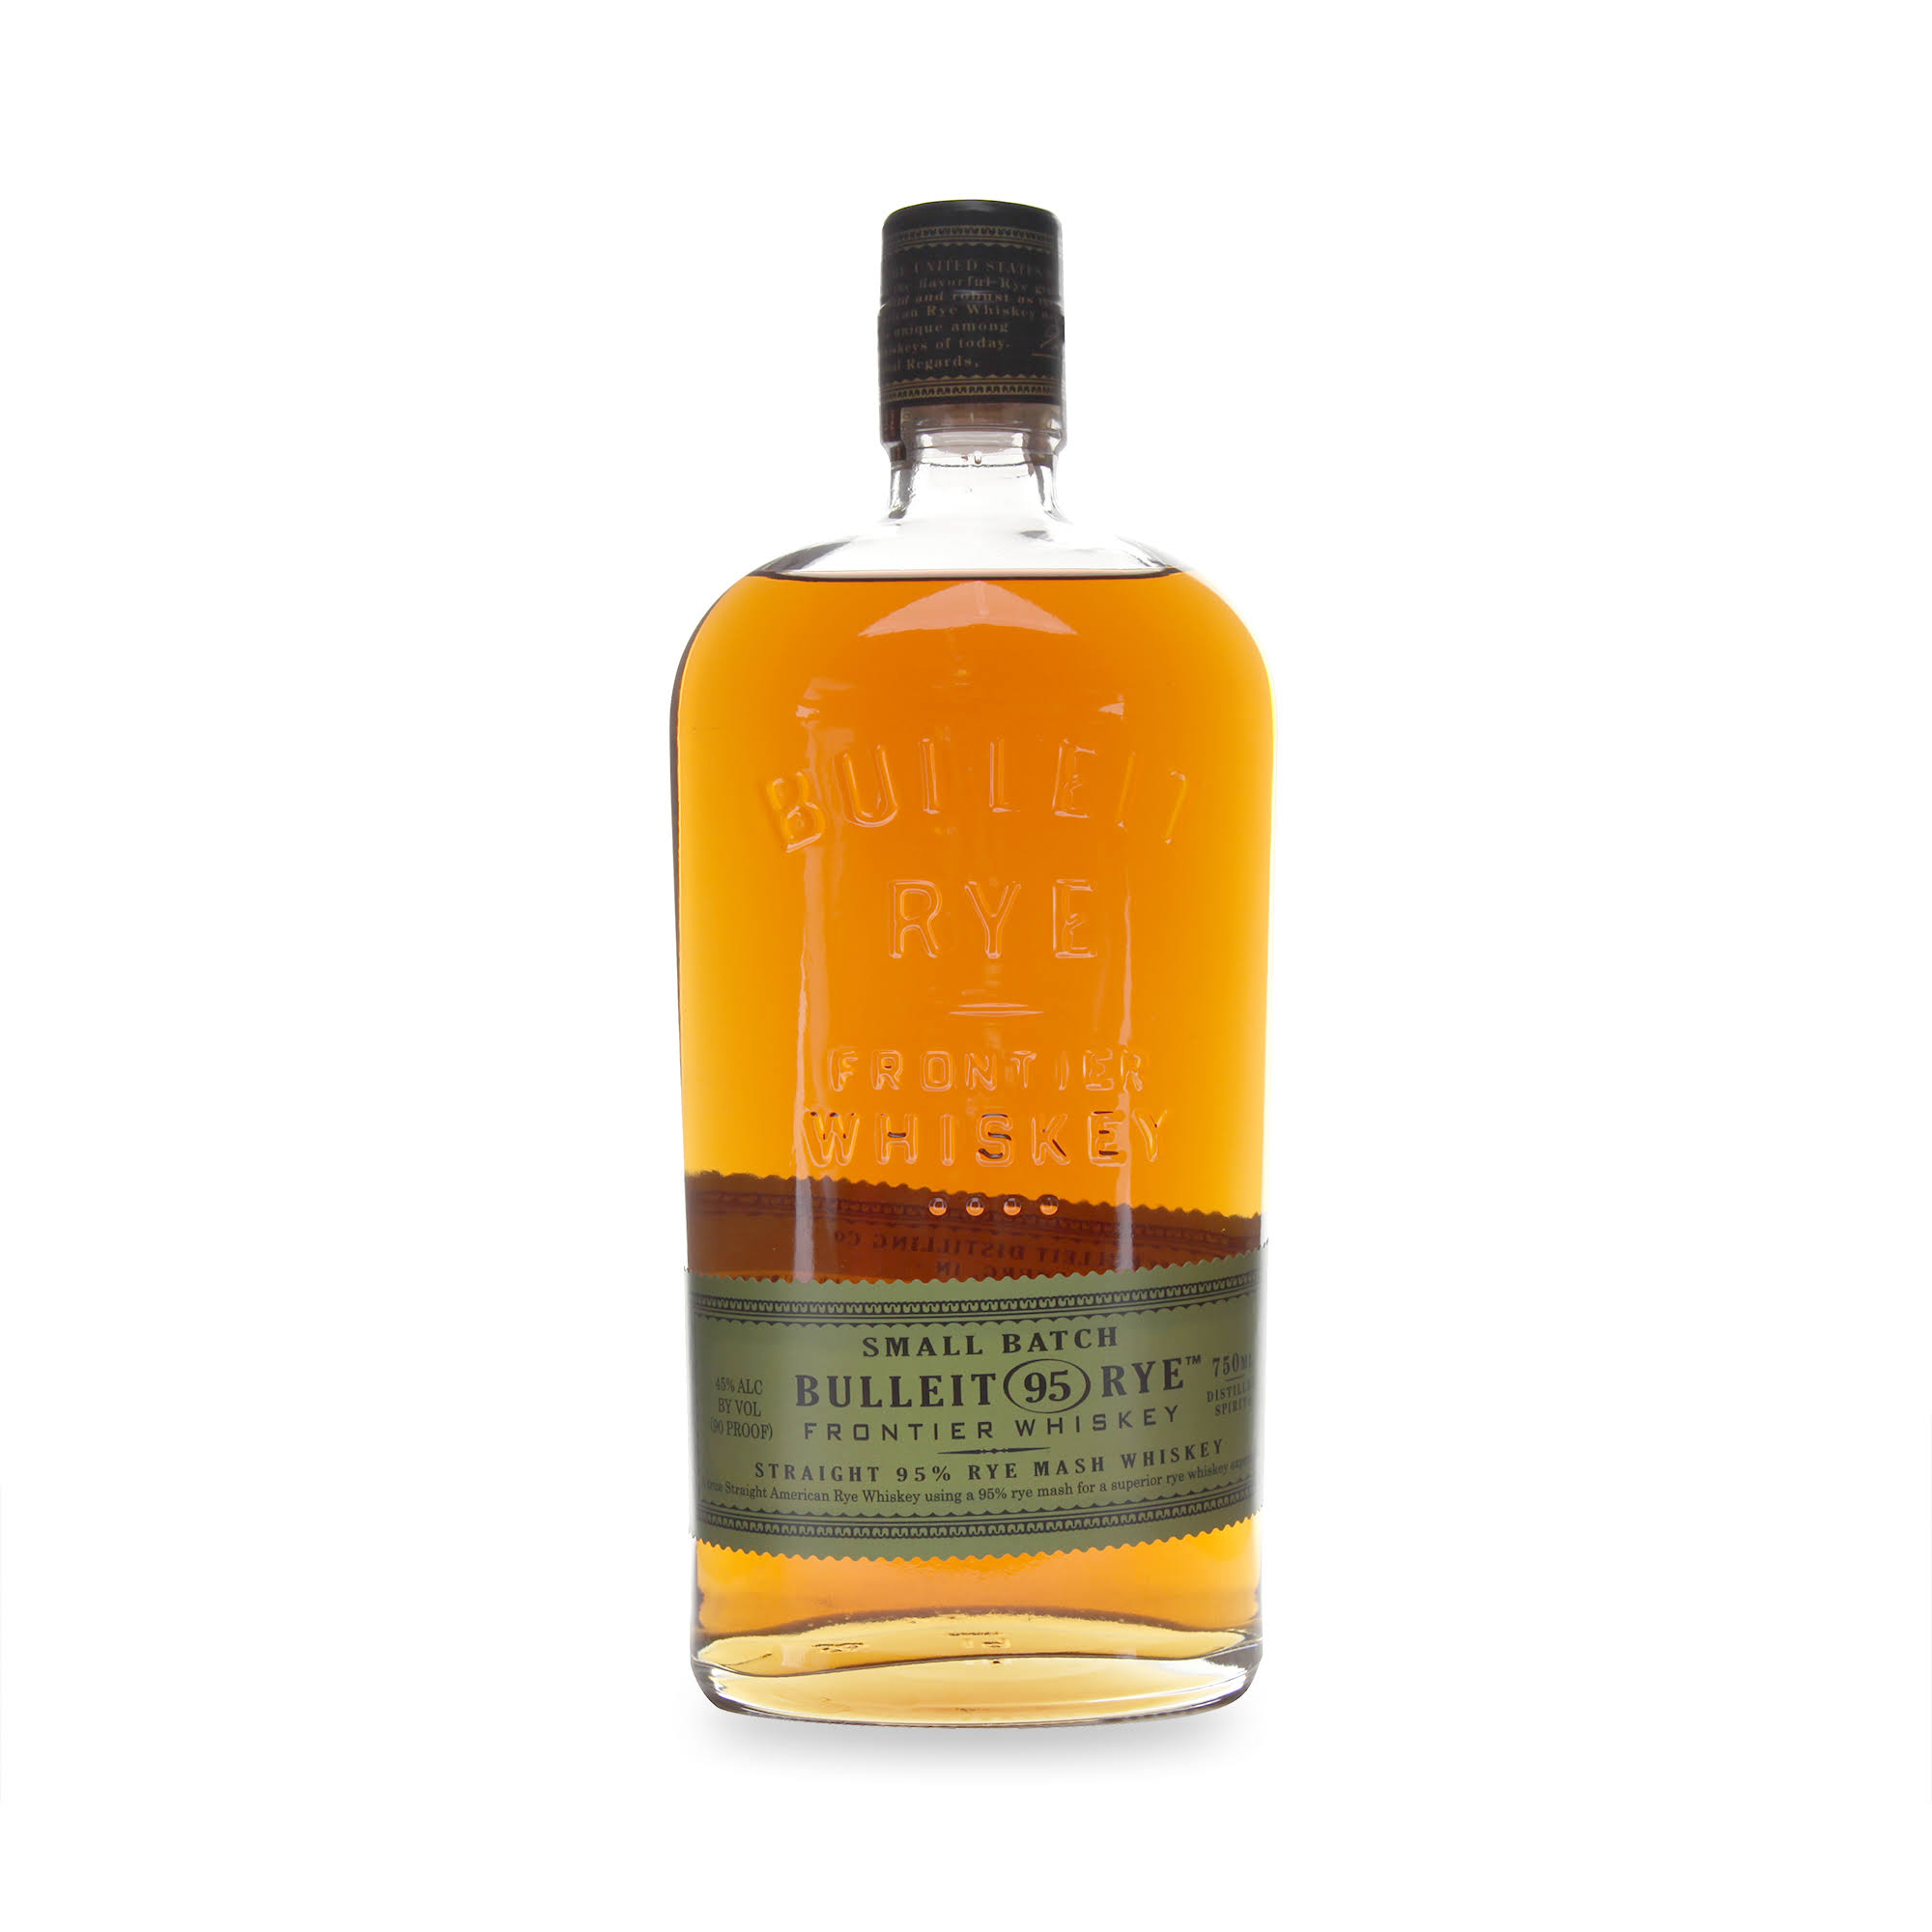 Bulleit Whiskey, Straight 95% Rye Mash - 750 ml